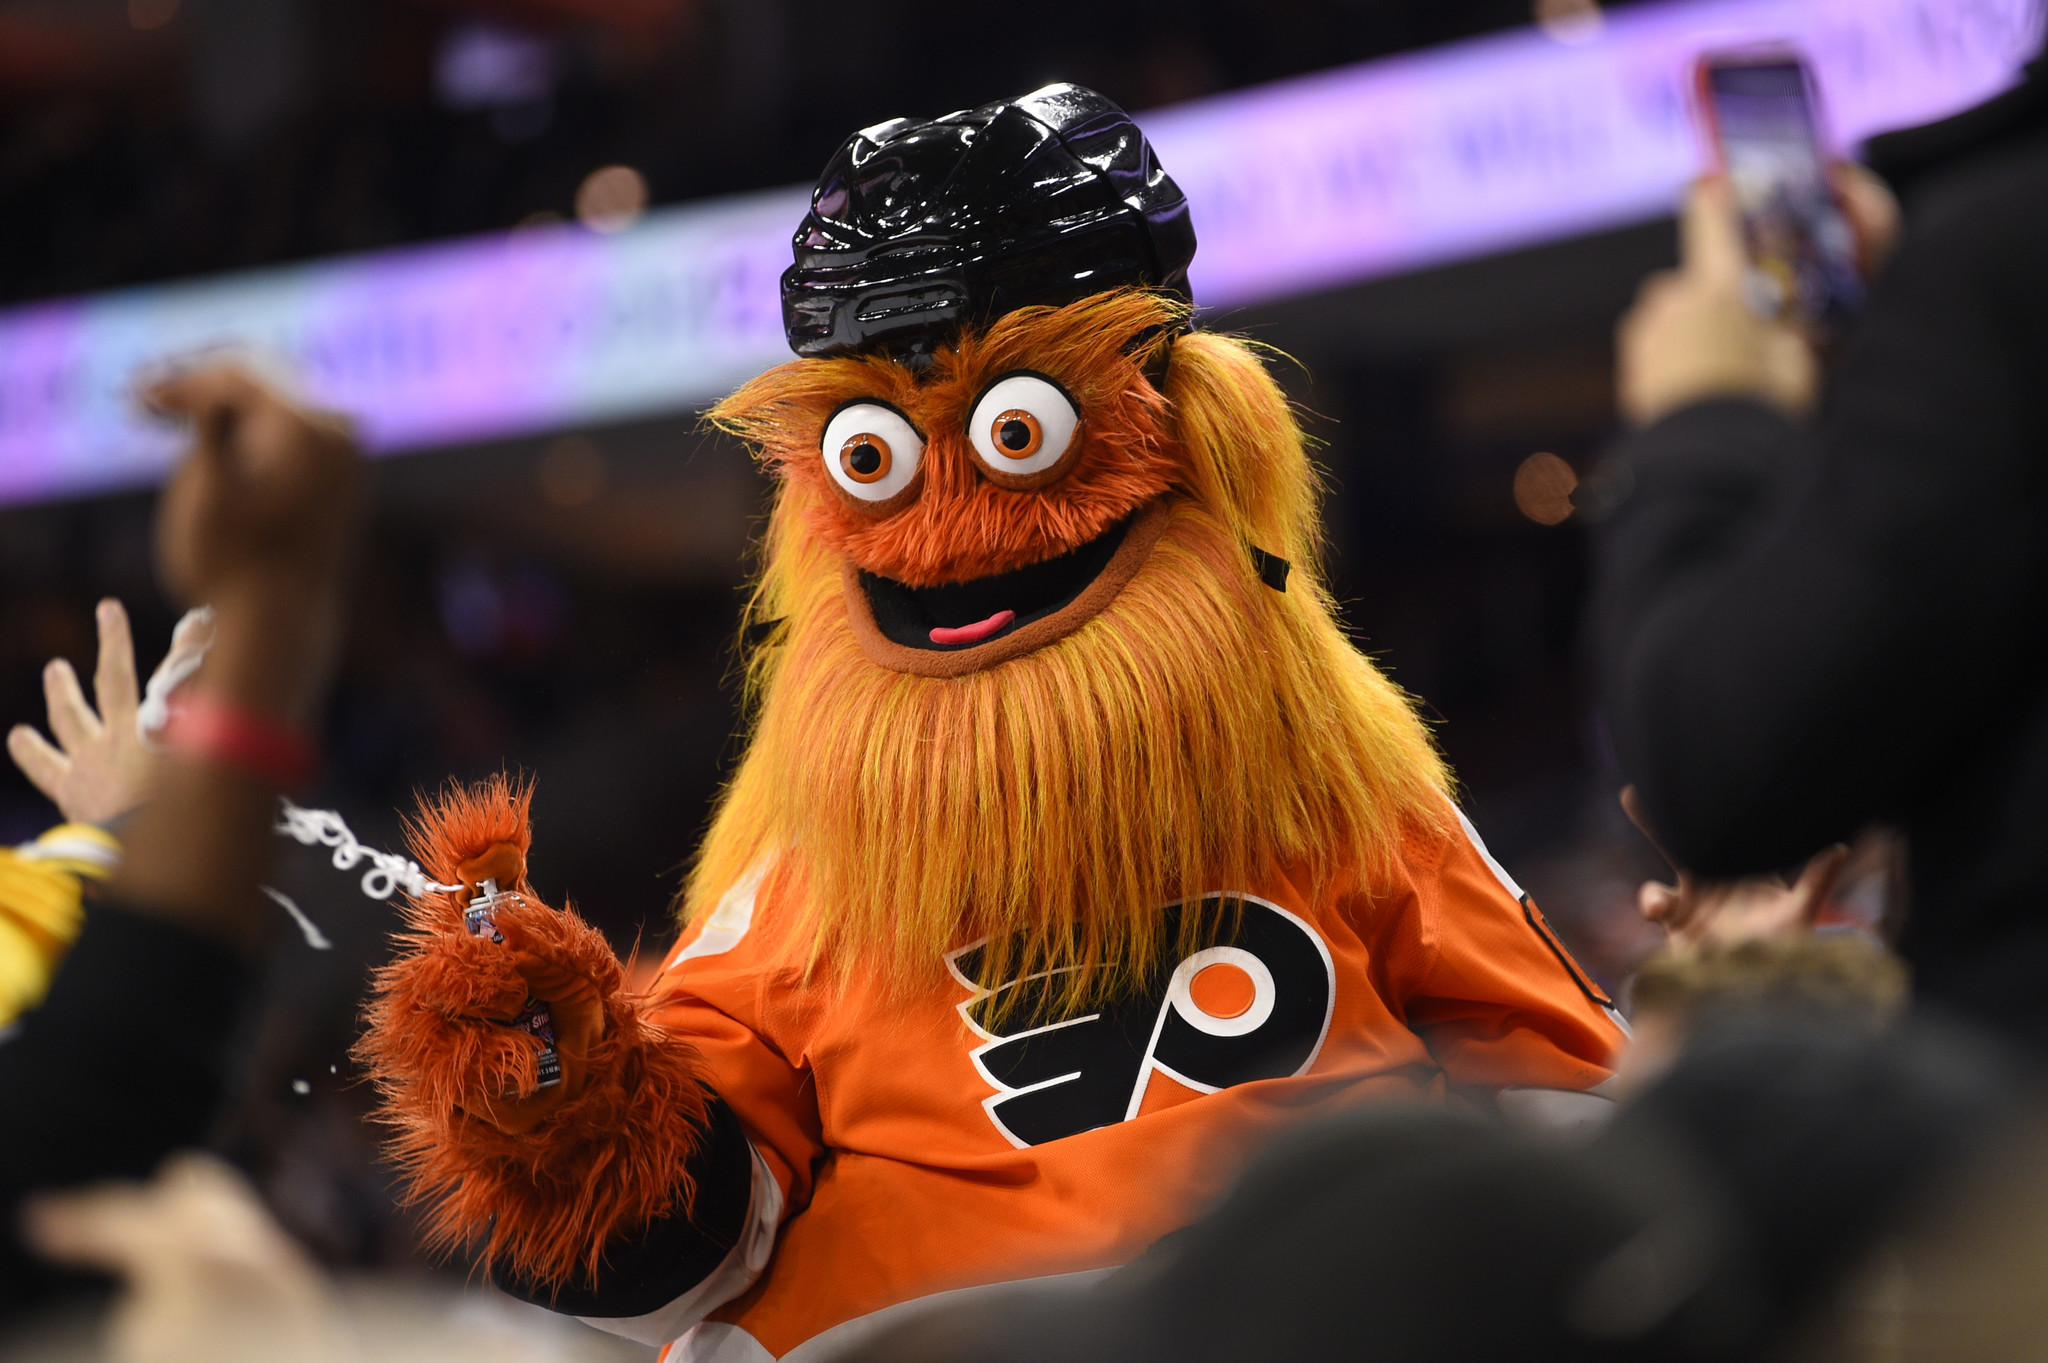 Report: Flyers mascot Gritty under investigation for assualting teen